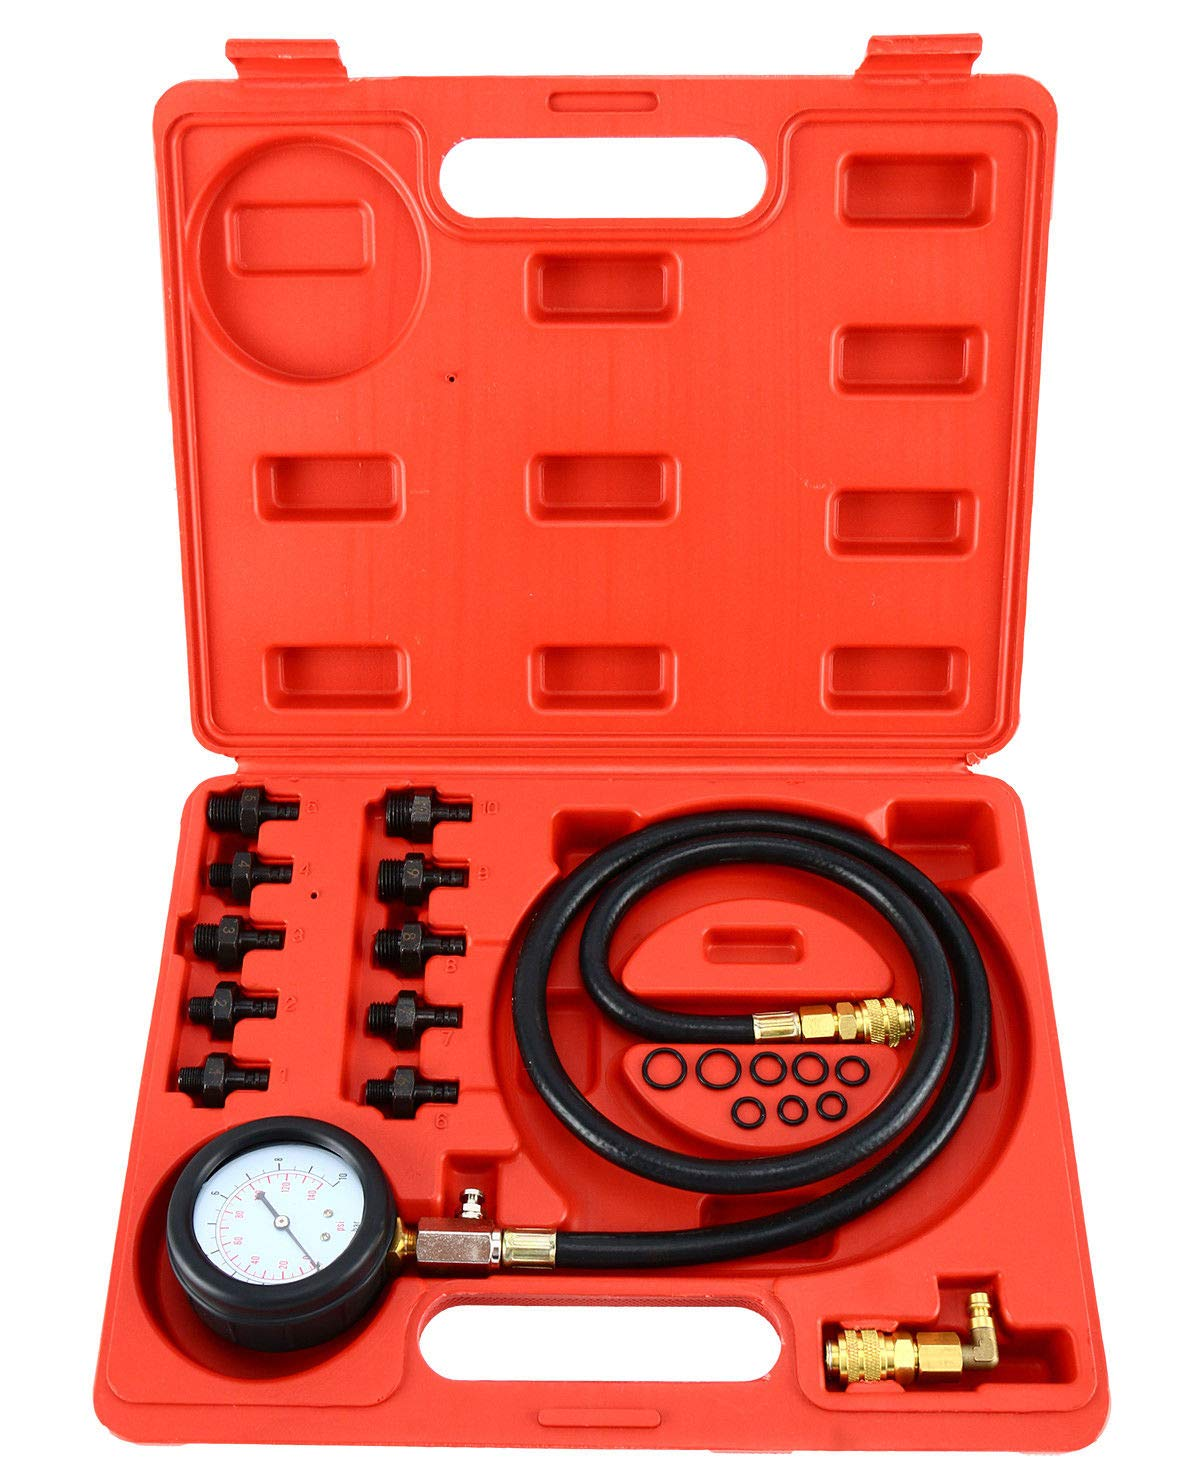 AWauto Low Oil Engine Low Oil Warning Devices Pressure Tester Kit Car Garage Set